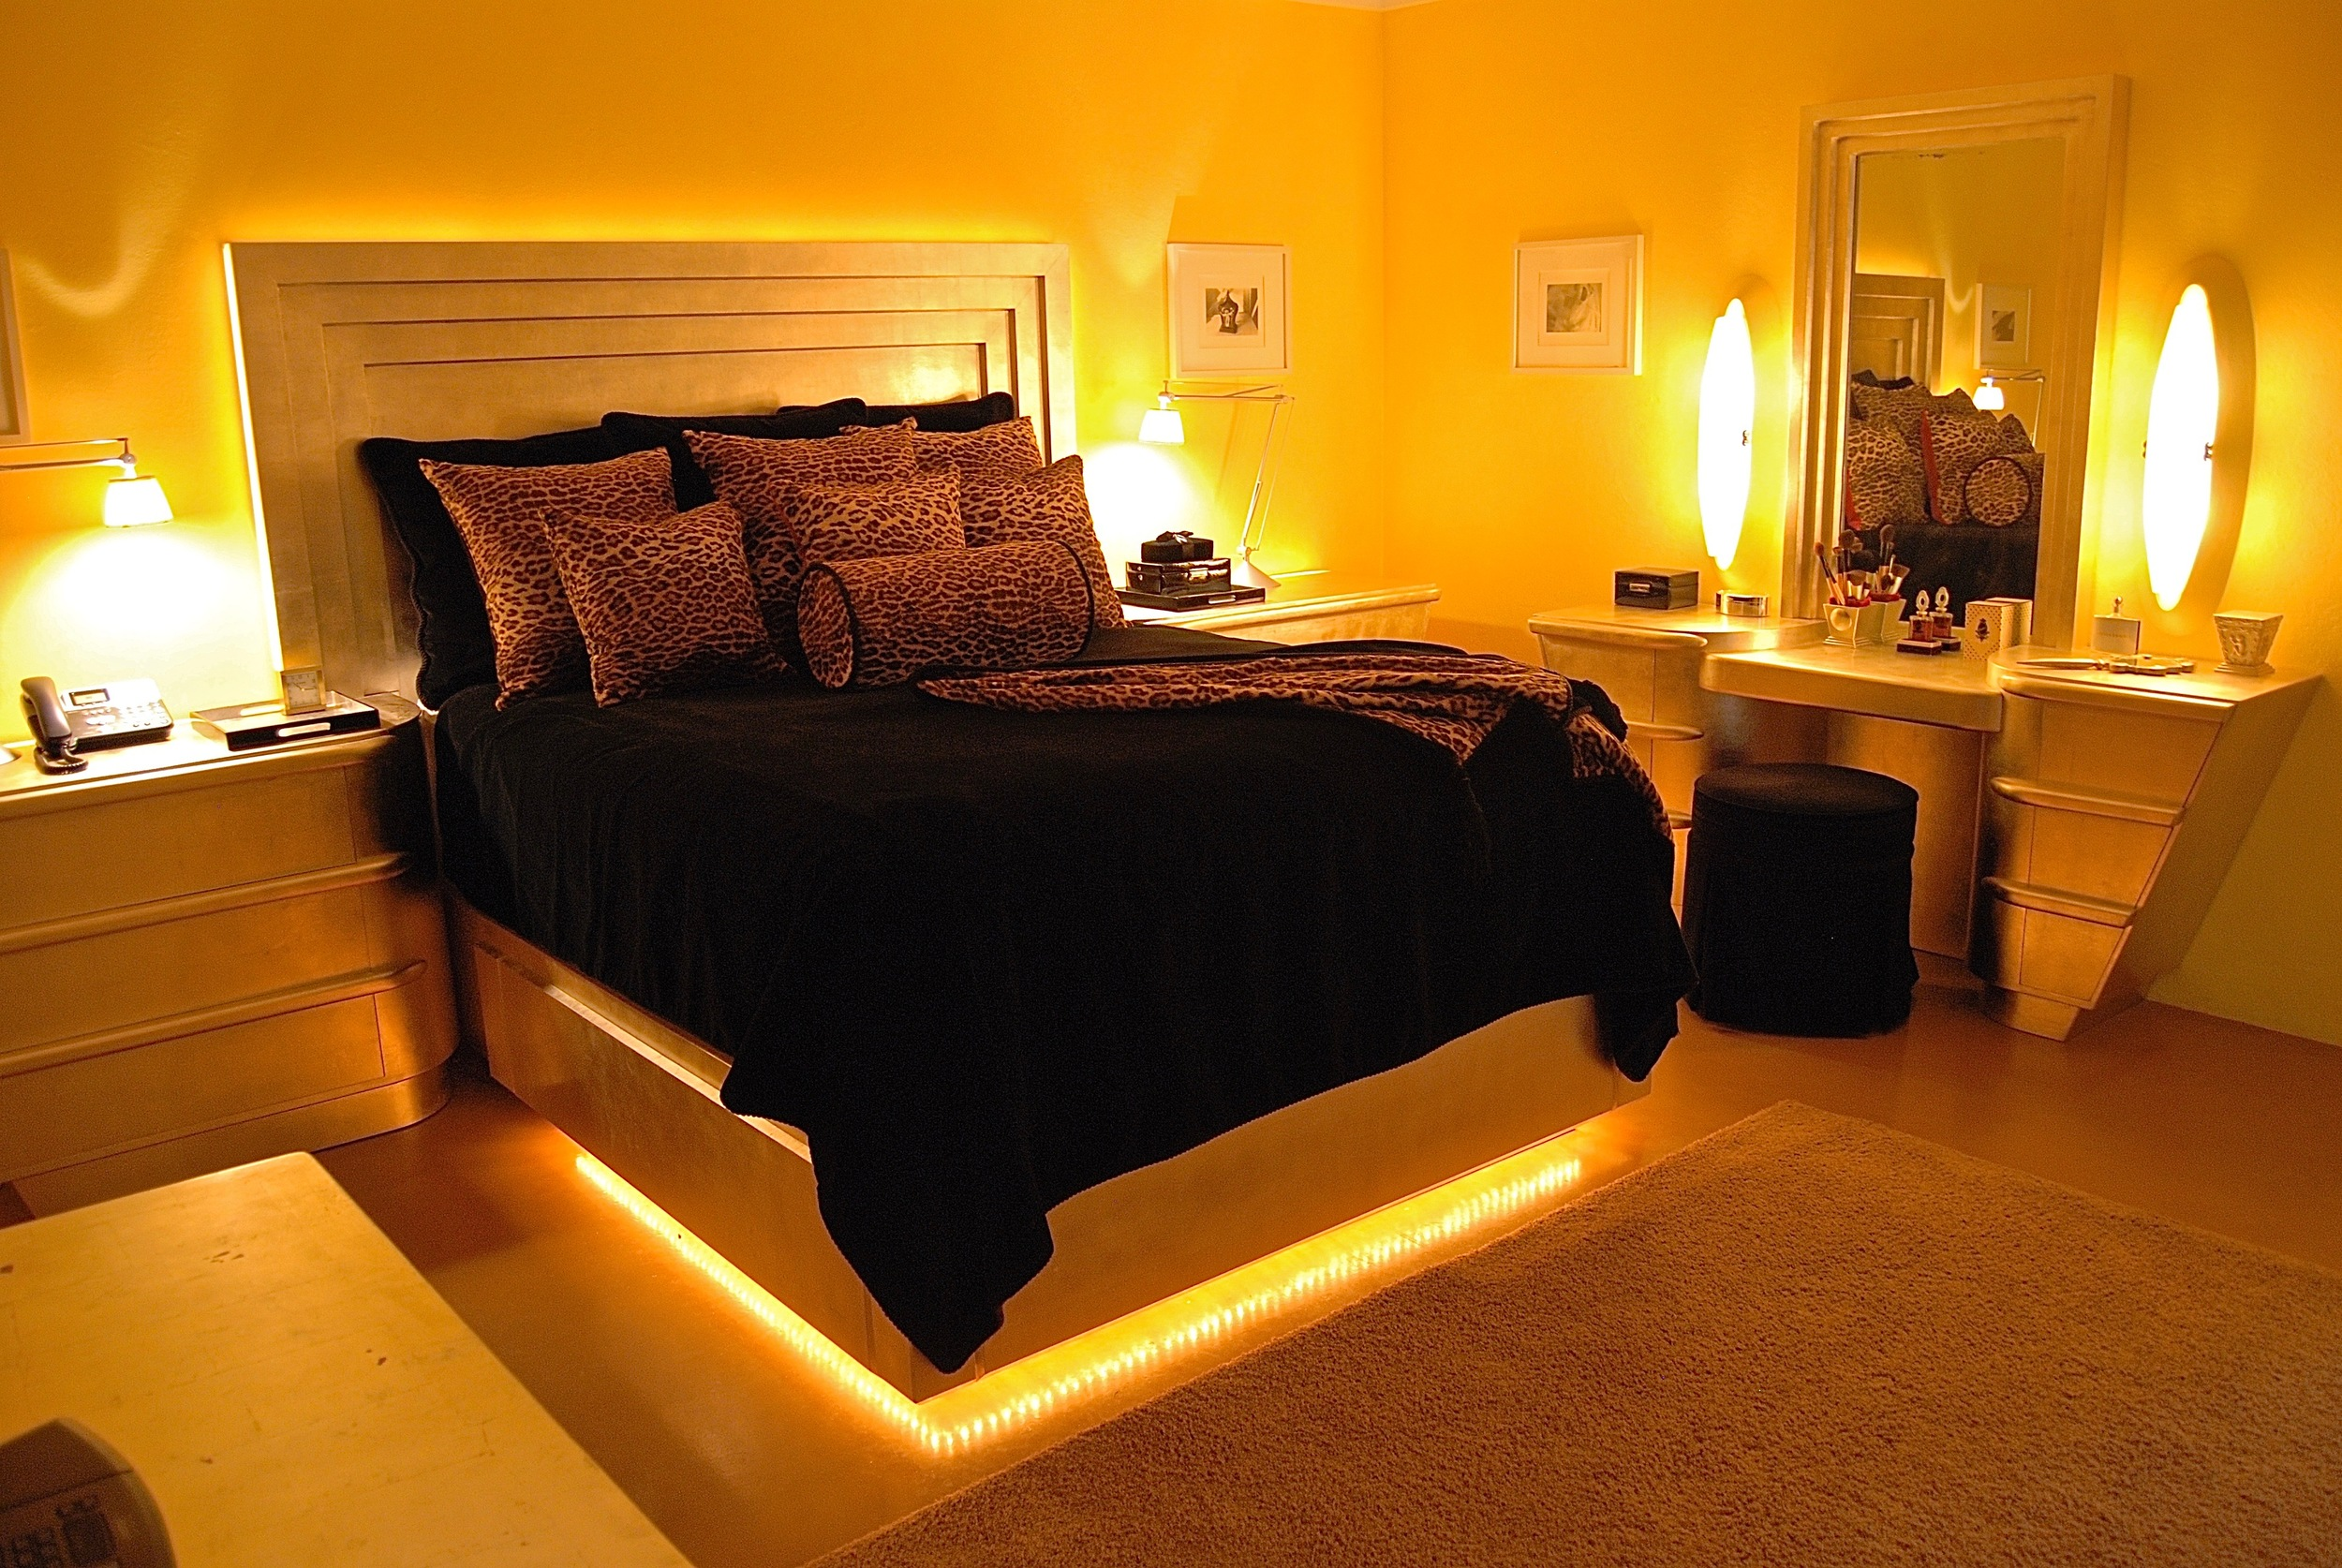 Coffin & King Custom Furniture/ Interiors - Winged Bed, Dream Vanity, 14 Kt. White Gold Leaf